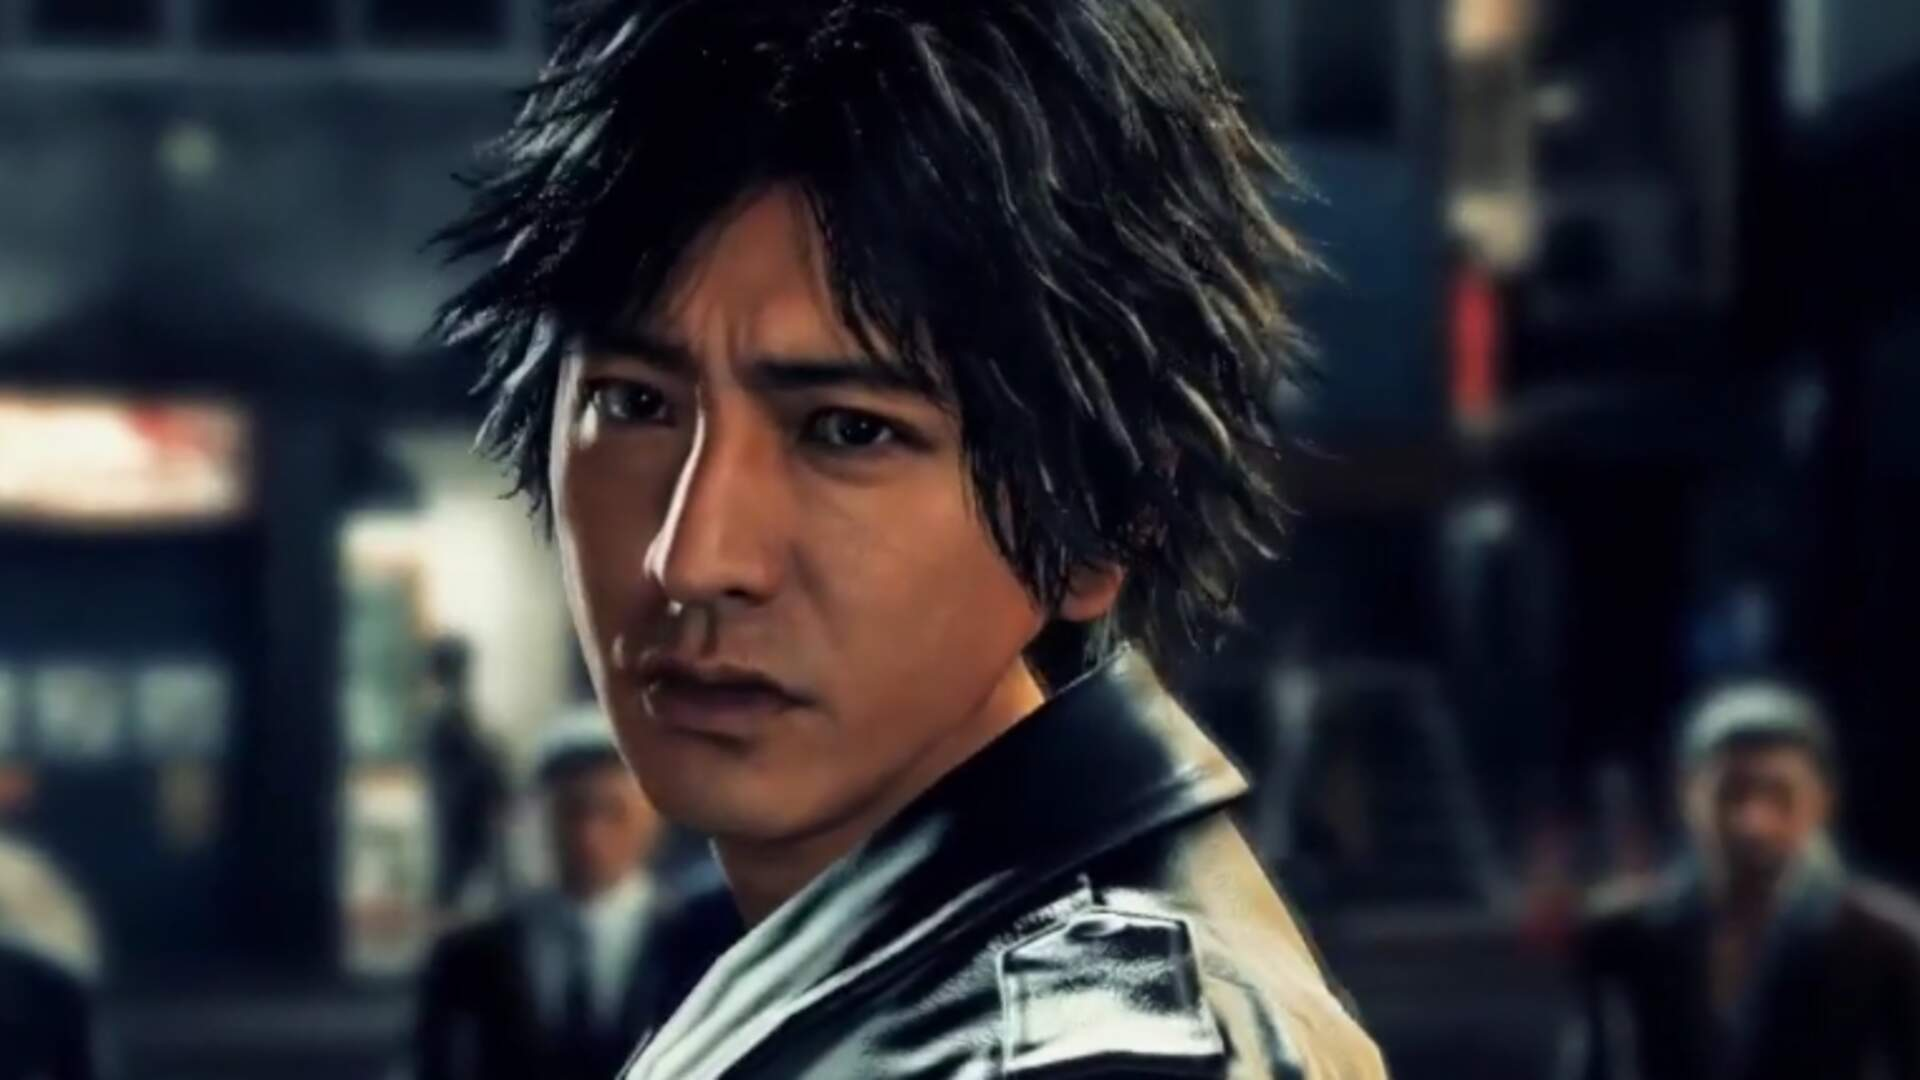 Judgment Release Date, Gameplay, Characters - Everything we Know